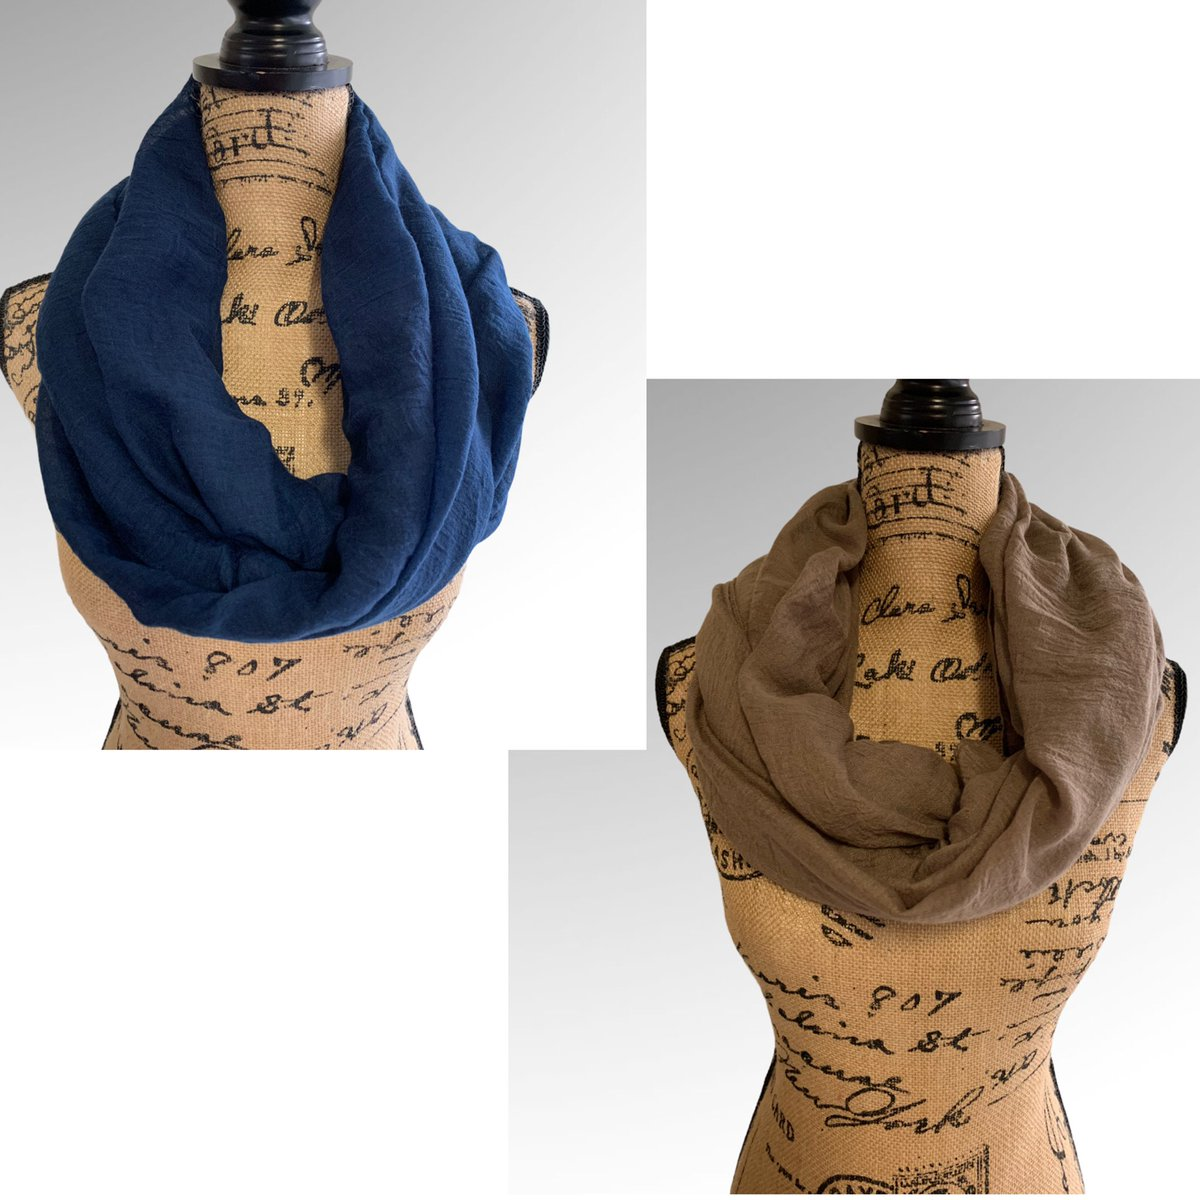 Check out Set of 2 #Lightweight #Scarf #Blue #Brown Solid Color #winter #shawl https://t.co/nOzsD5bY8s @eBay https://t.co/Bd6aMlgVRw